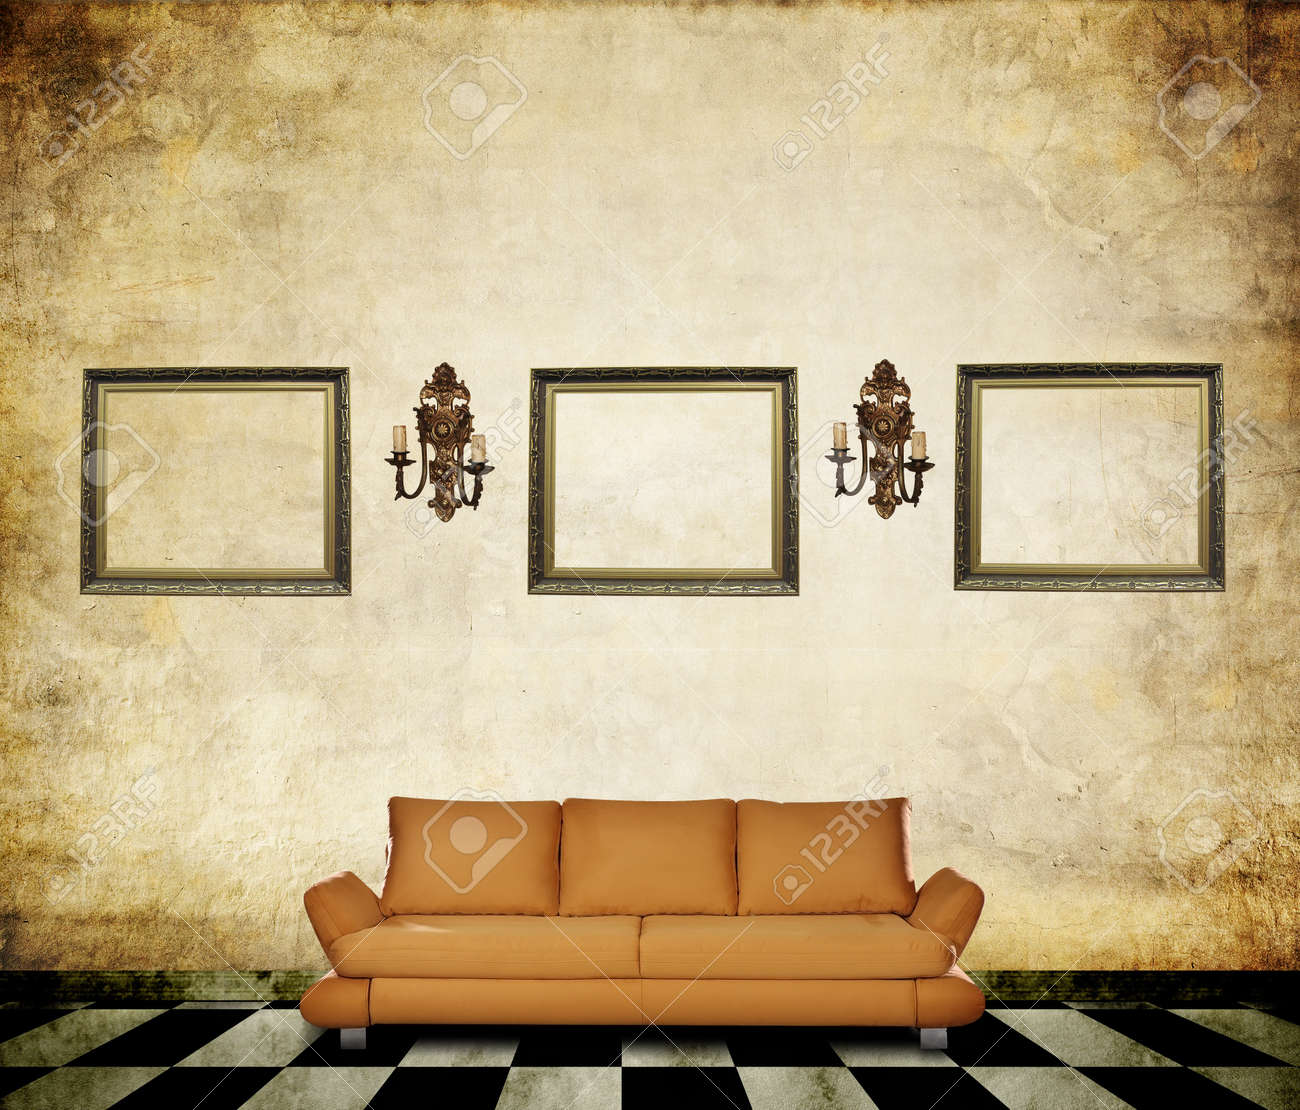 Vintage room with forniture, grunge floor and wall with lanterns and frames Stock Photo - 11985191